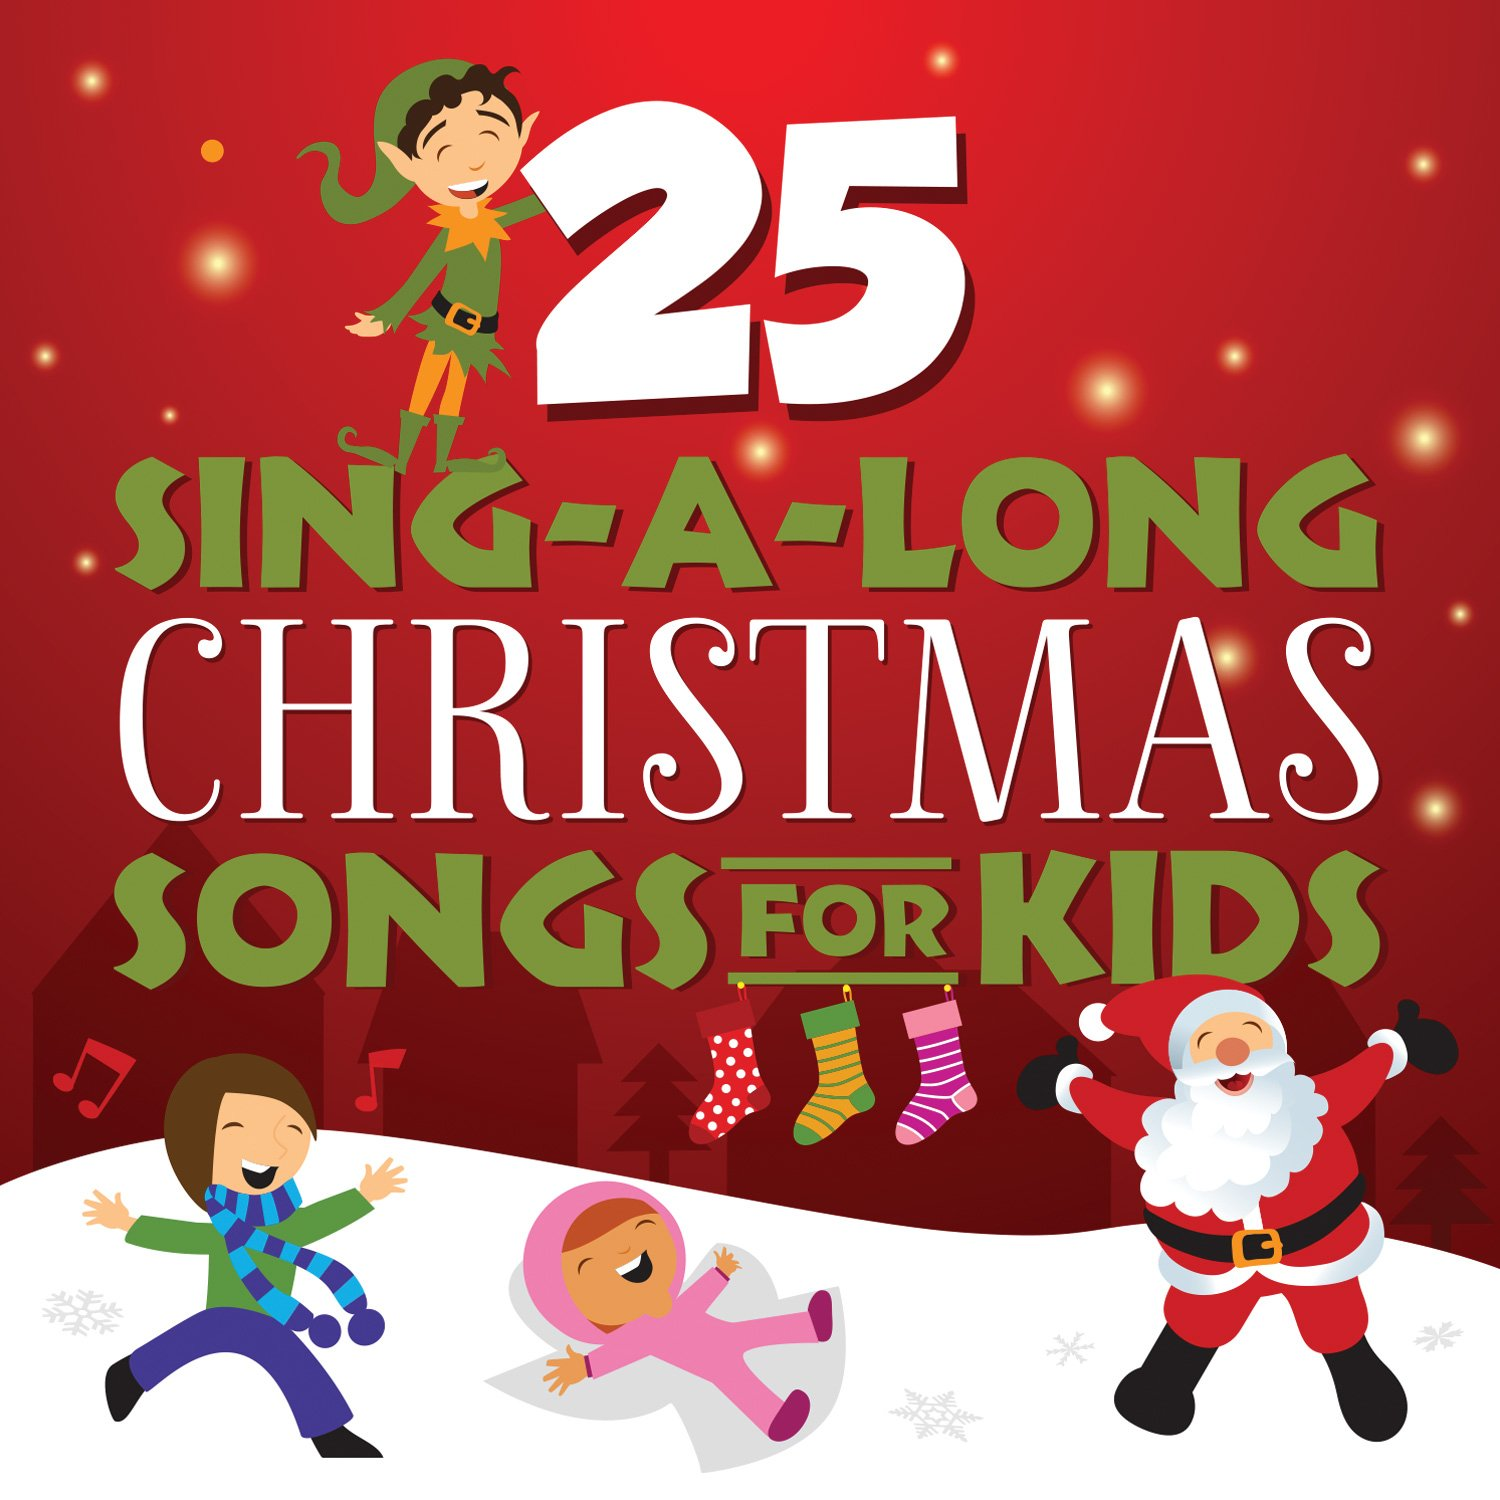 Songtime Kids - 25 Sing-A-Long Christmas Songs For Kids - Amazon.com ...